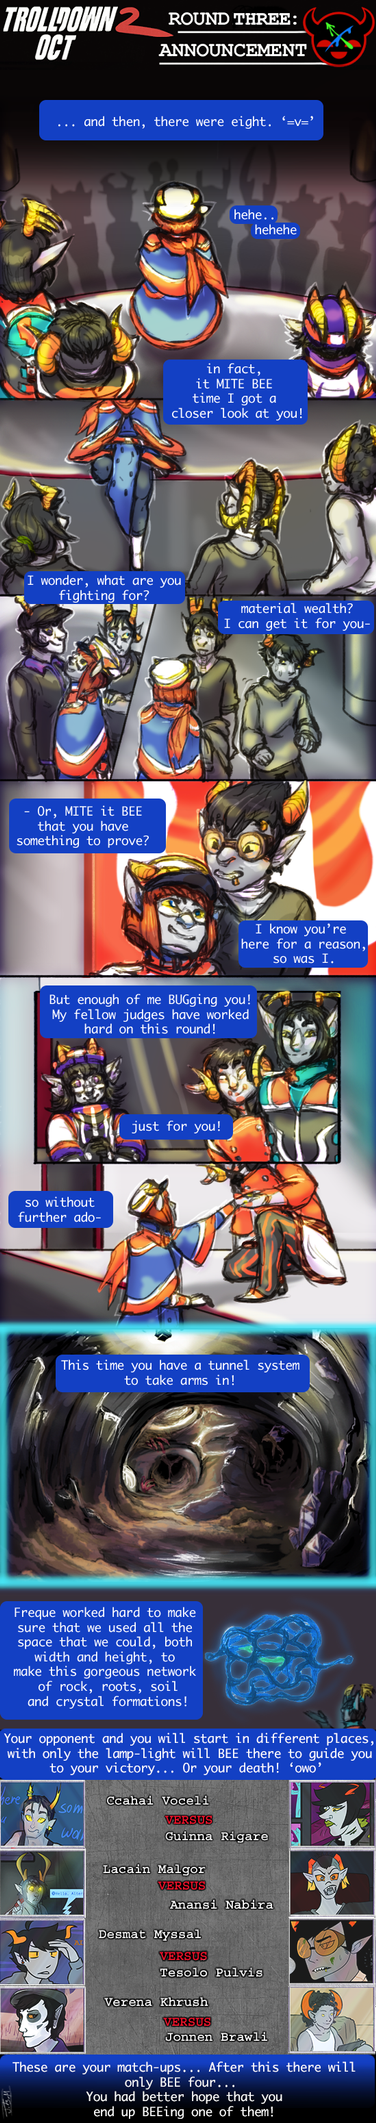 TD2 Round3: ANNOUNCEMENT COMIC by Jesseth